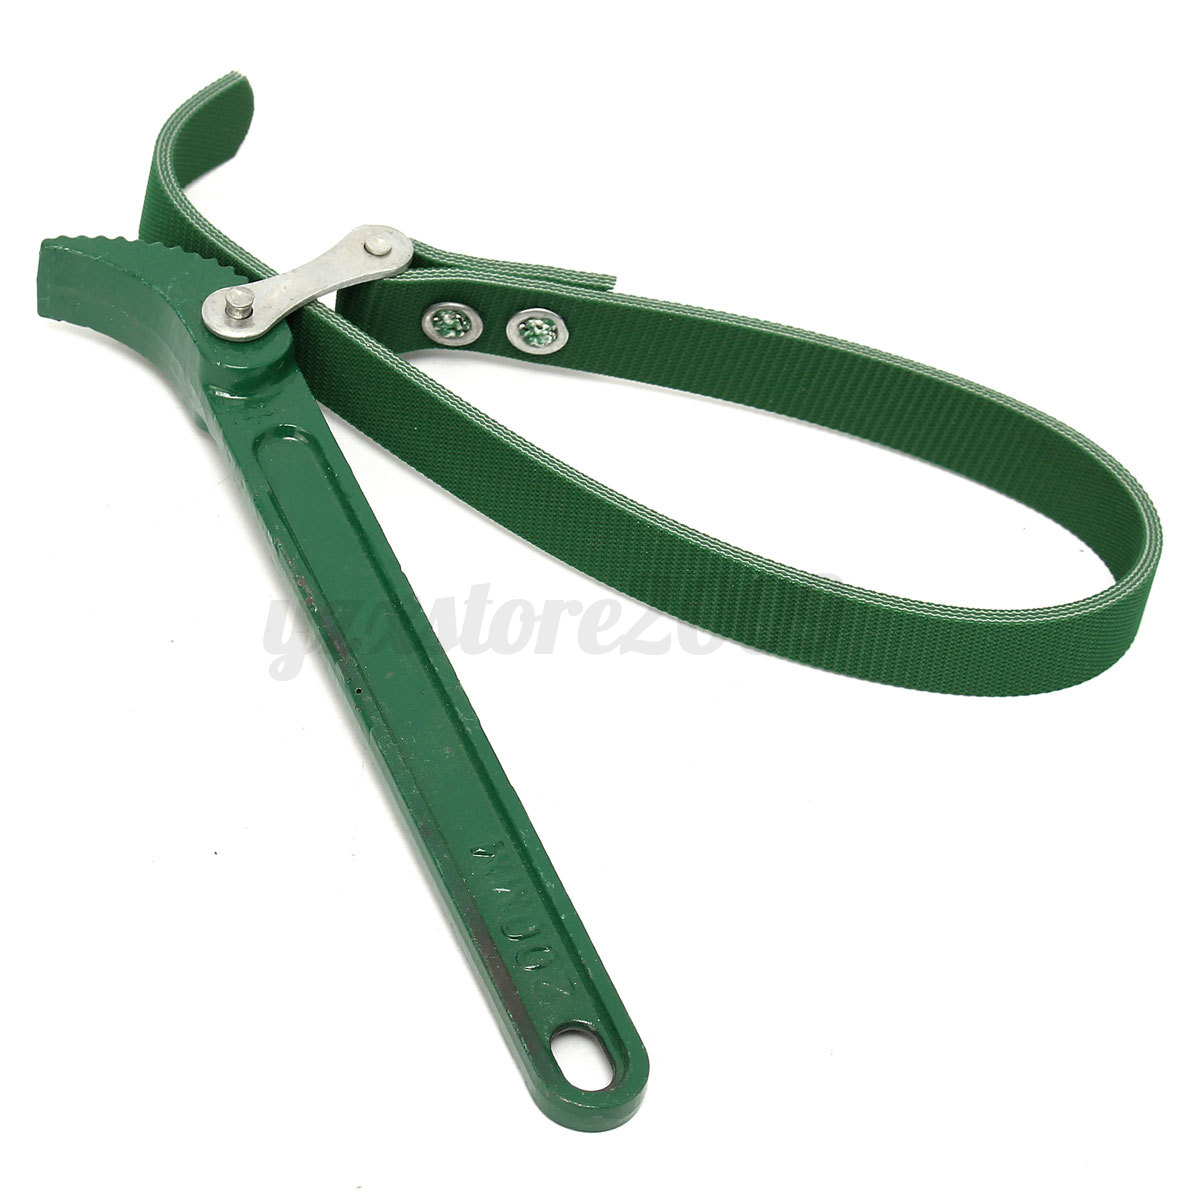 8 12 16 cl sangle filtre huile oil grid filter strap wrench plier voiture ebay - Cle a sangle ...